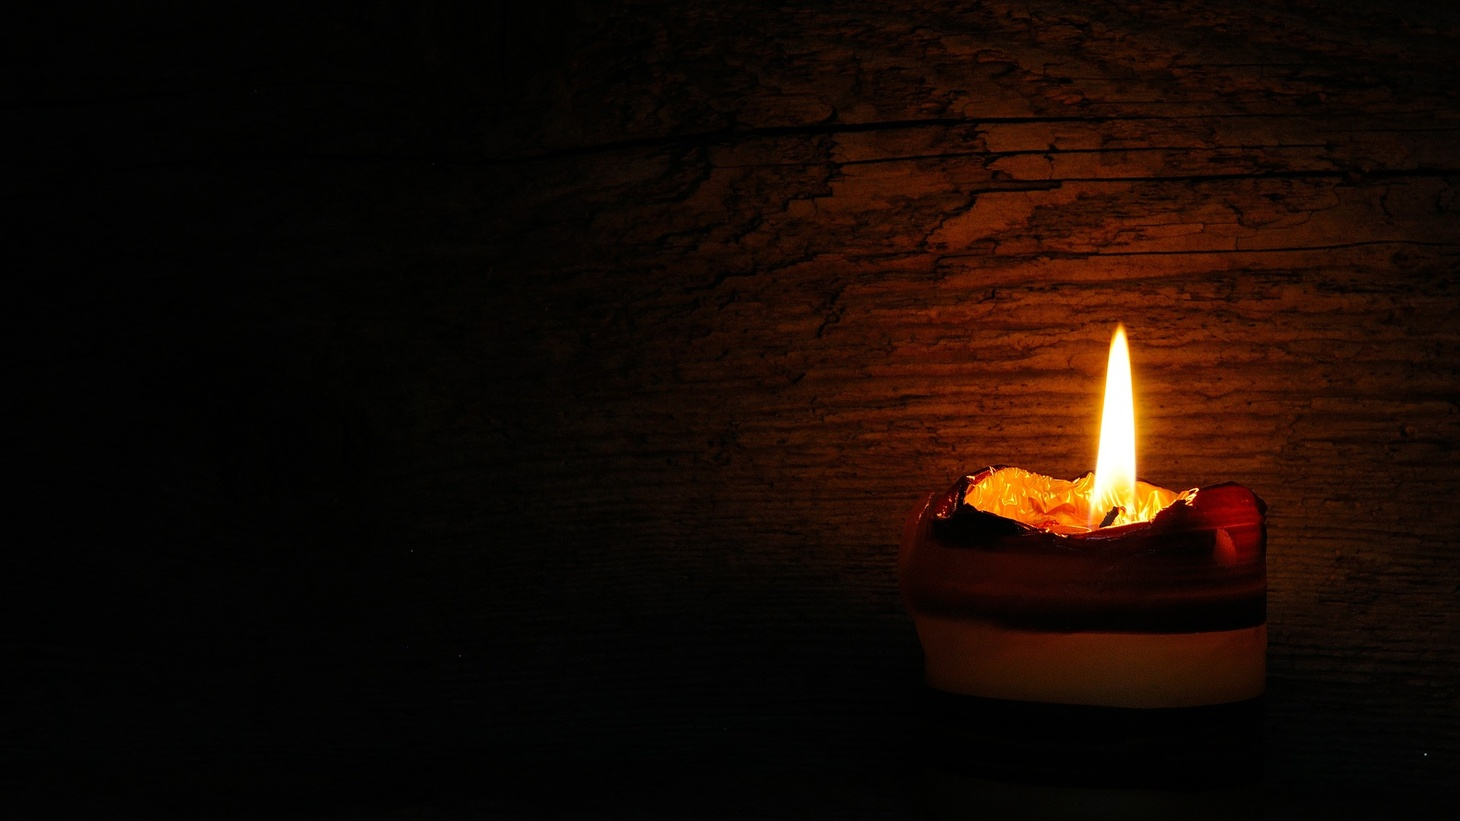 A candle flame.